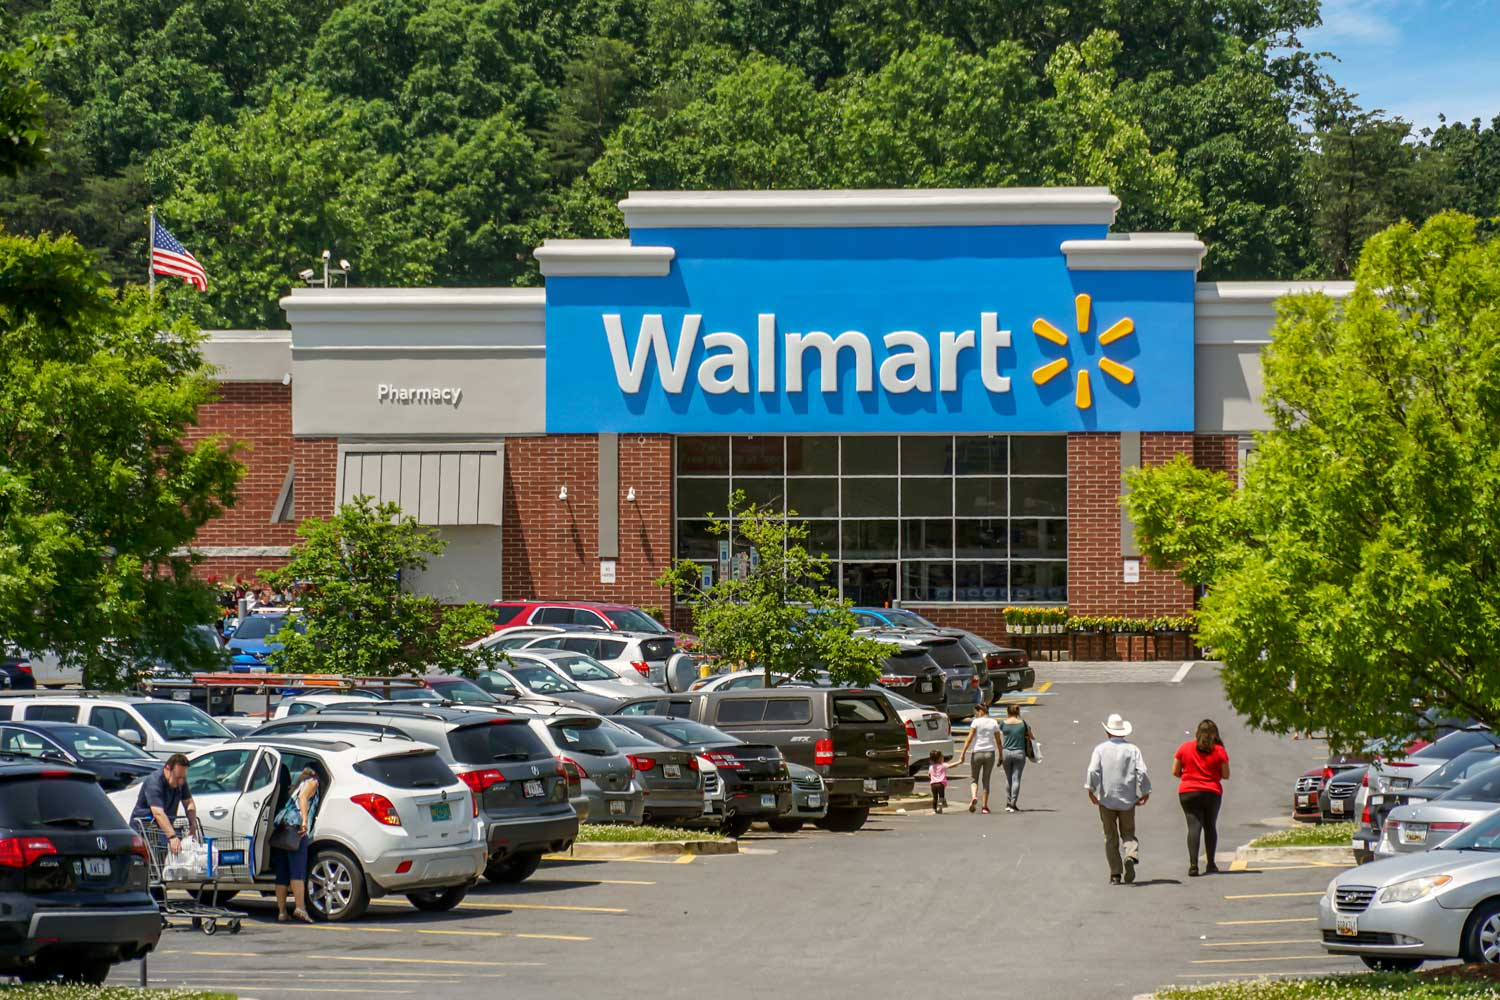 Walmart is 10 minutes from Heritage Square Apartments in New Carrollton, MD